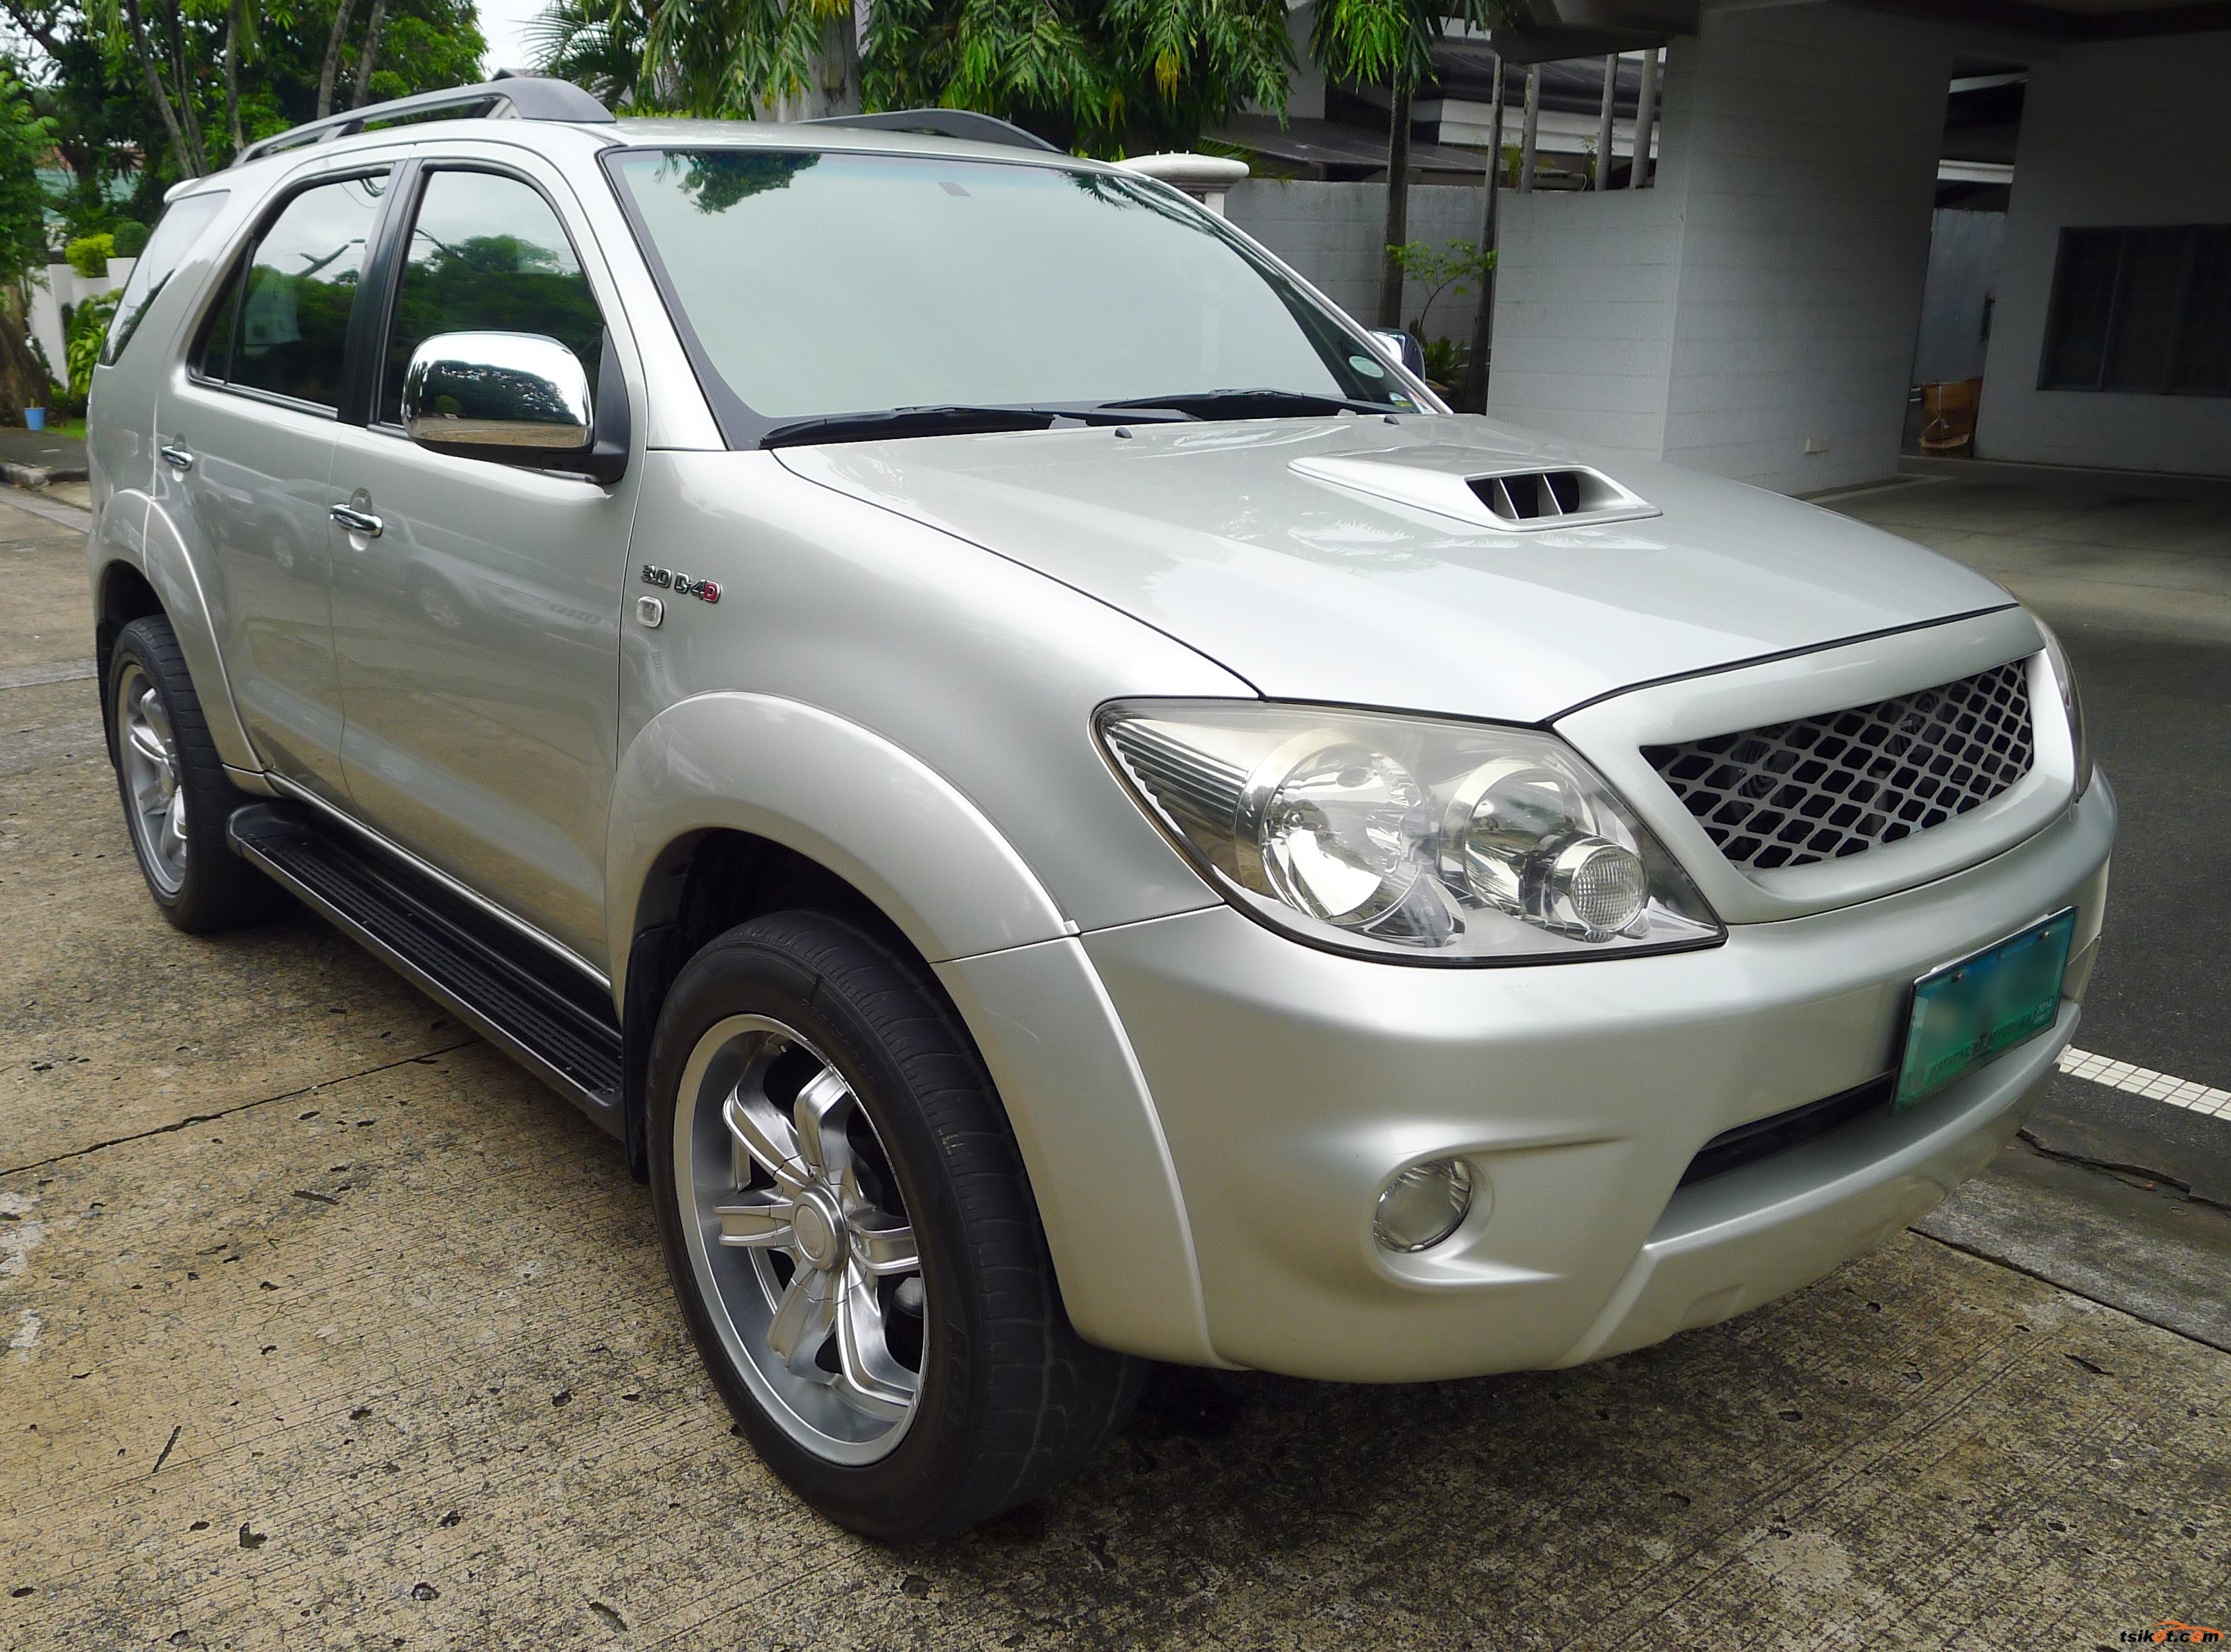 Toyota Fortuner 2005 - Car for Sale Metro Manila